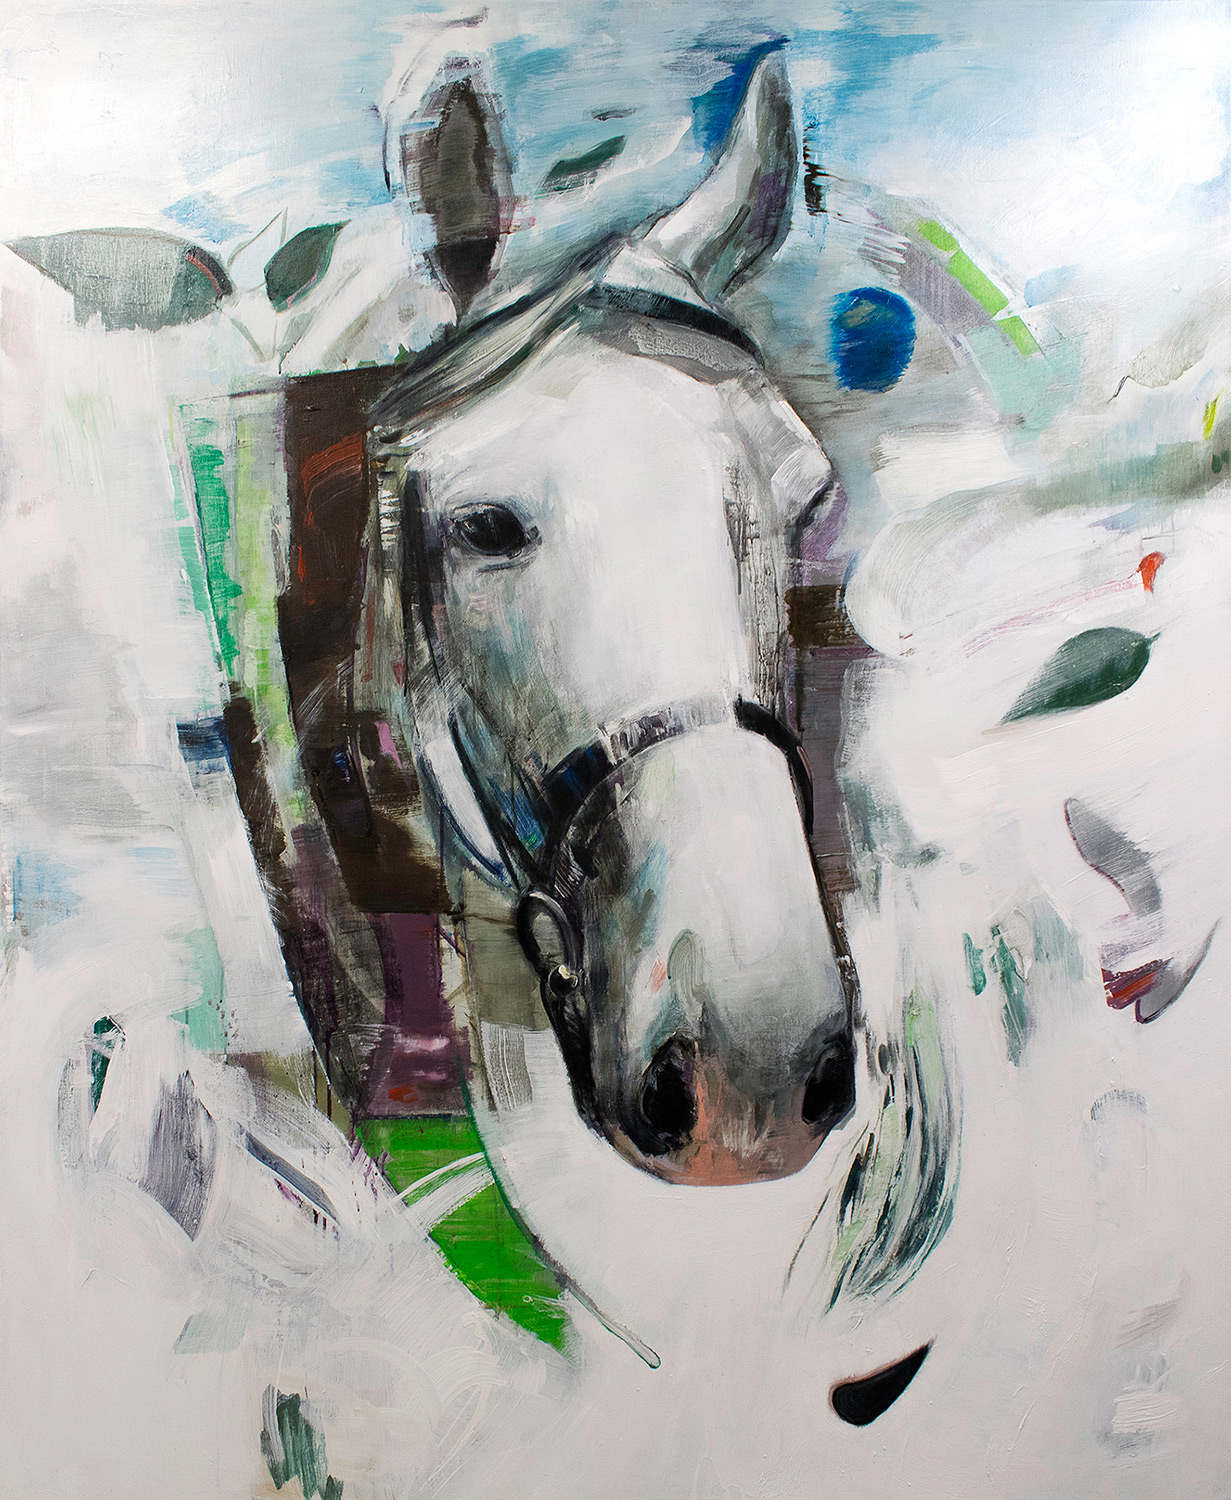 paintings, animal, graphical, animals, wildlife, blue, green, white, acrylic, flax-canvas, contemporary-art, decorative, design, horses, interior, interior-design, modern, modern-art, nordic, scandinavien, Buy original high quality art. Paintings, drawings, limited edition prints & posters by talented artists.